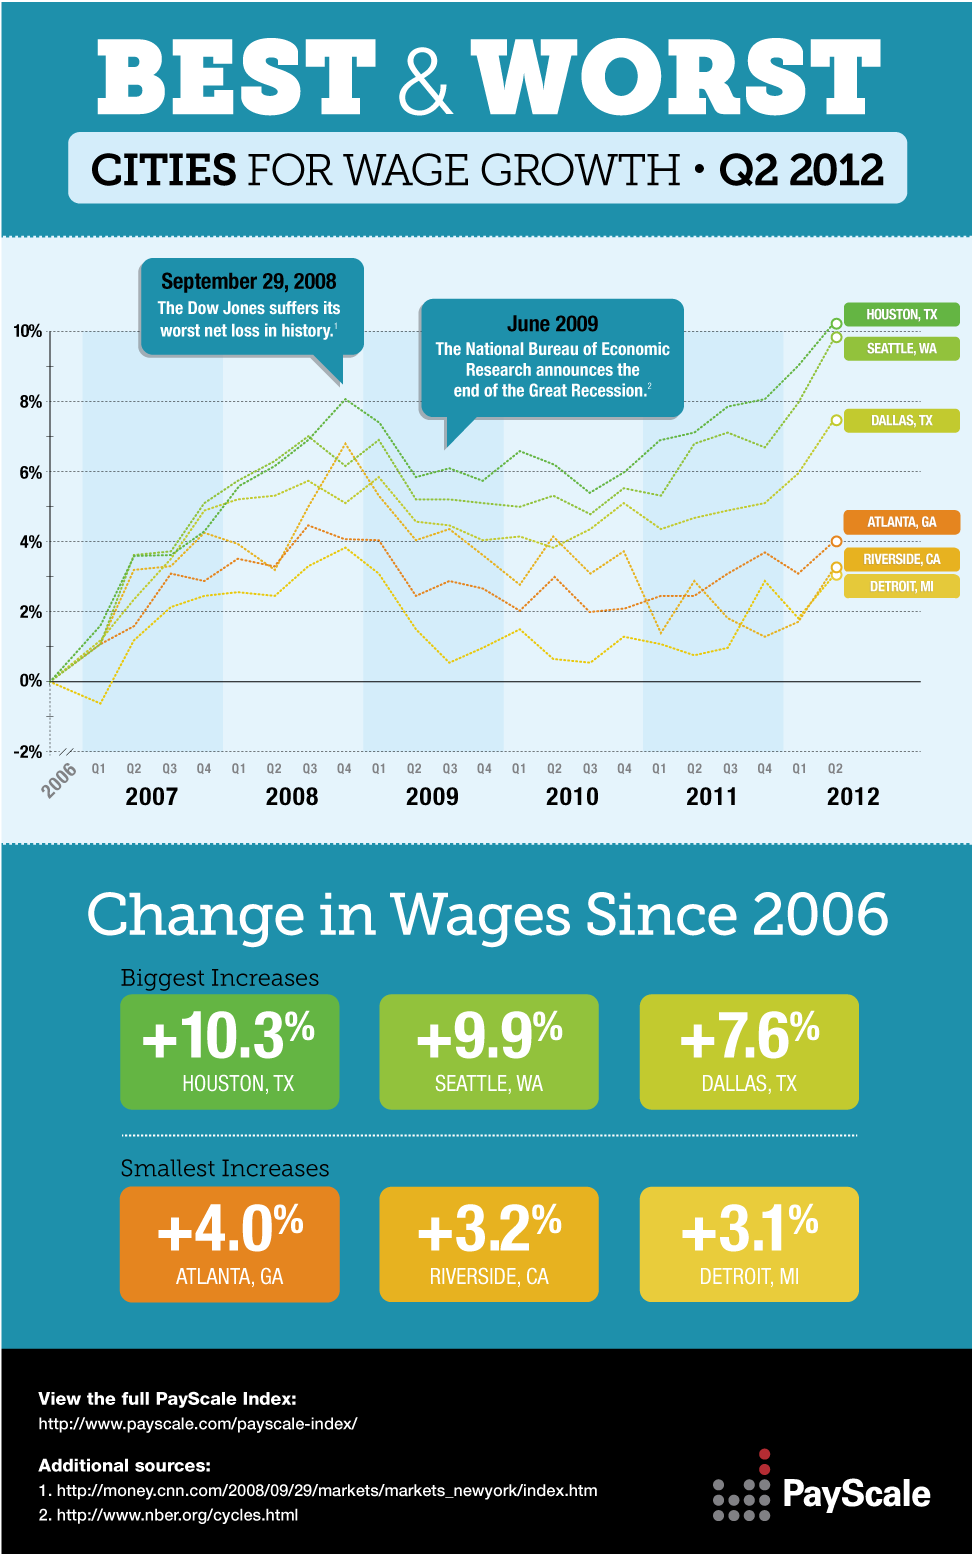 Cities-For-Wage-Growth-2012-infographic